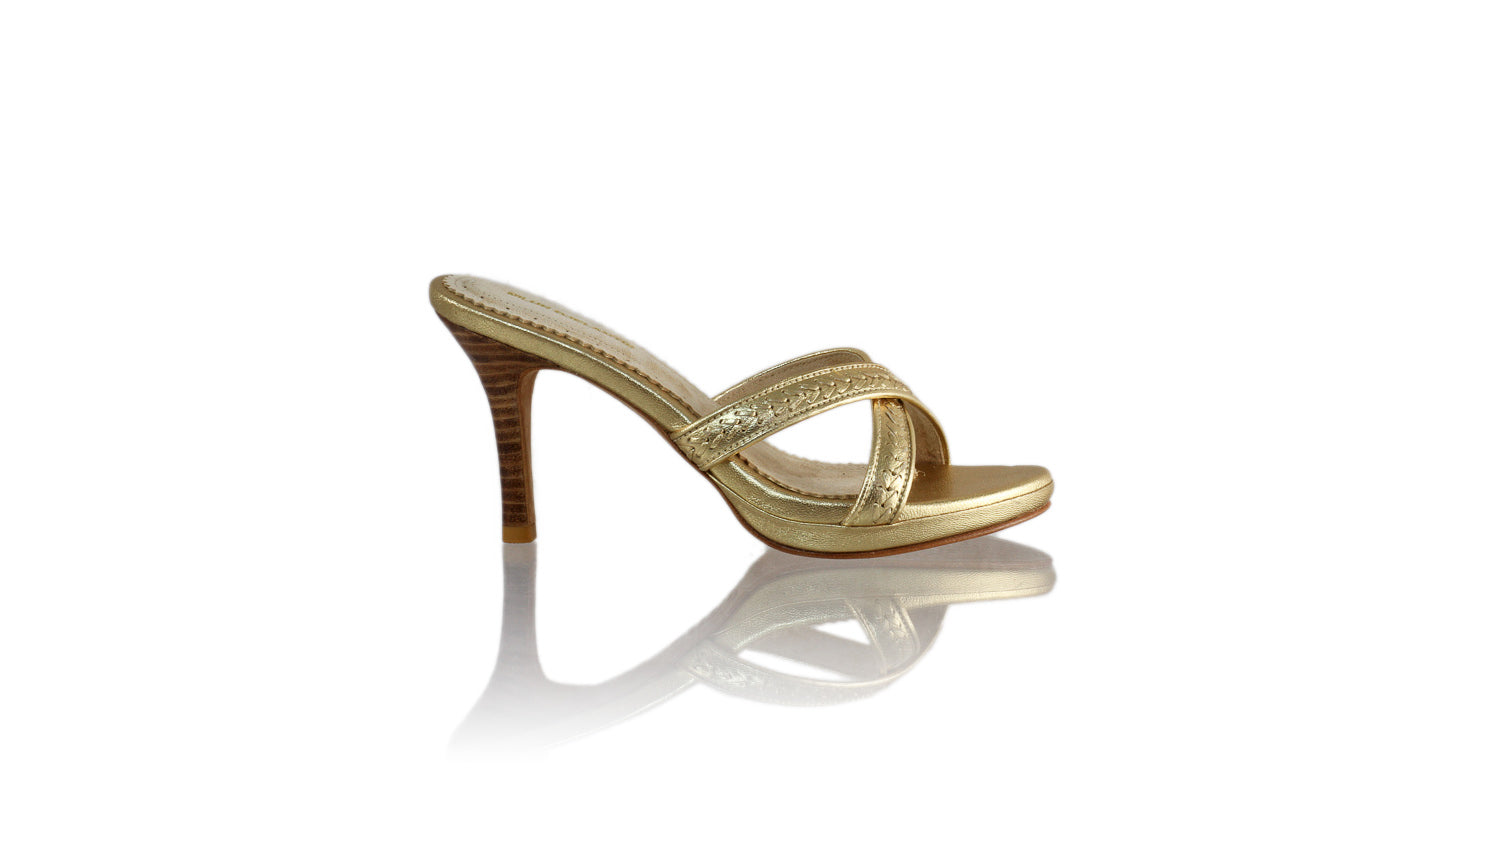 Leather-shoes-Shenoa 90MM SH PF - All Gold-sandals midheel-NILUH DJELANTIK-NILUH DJELANTIK